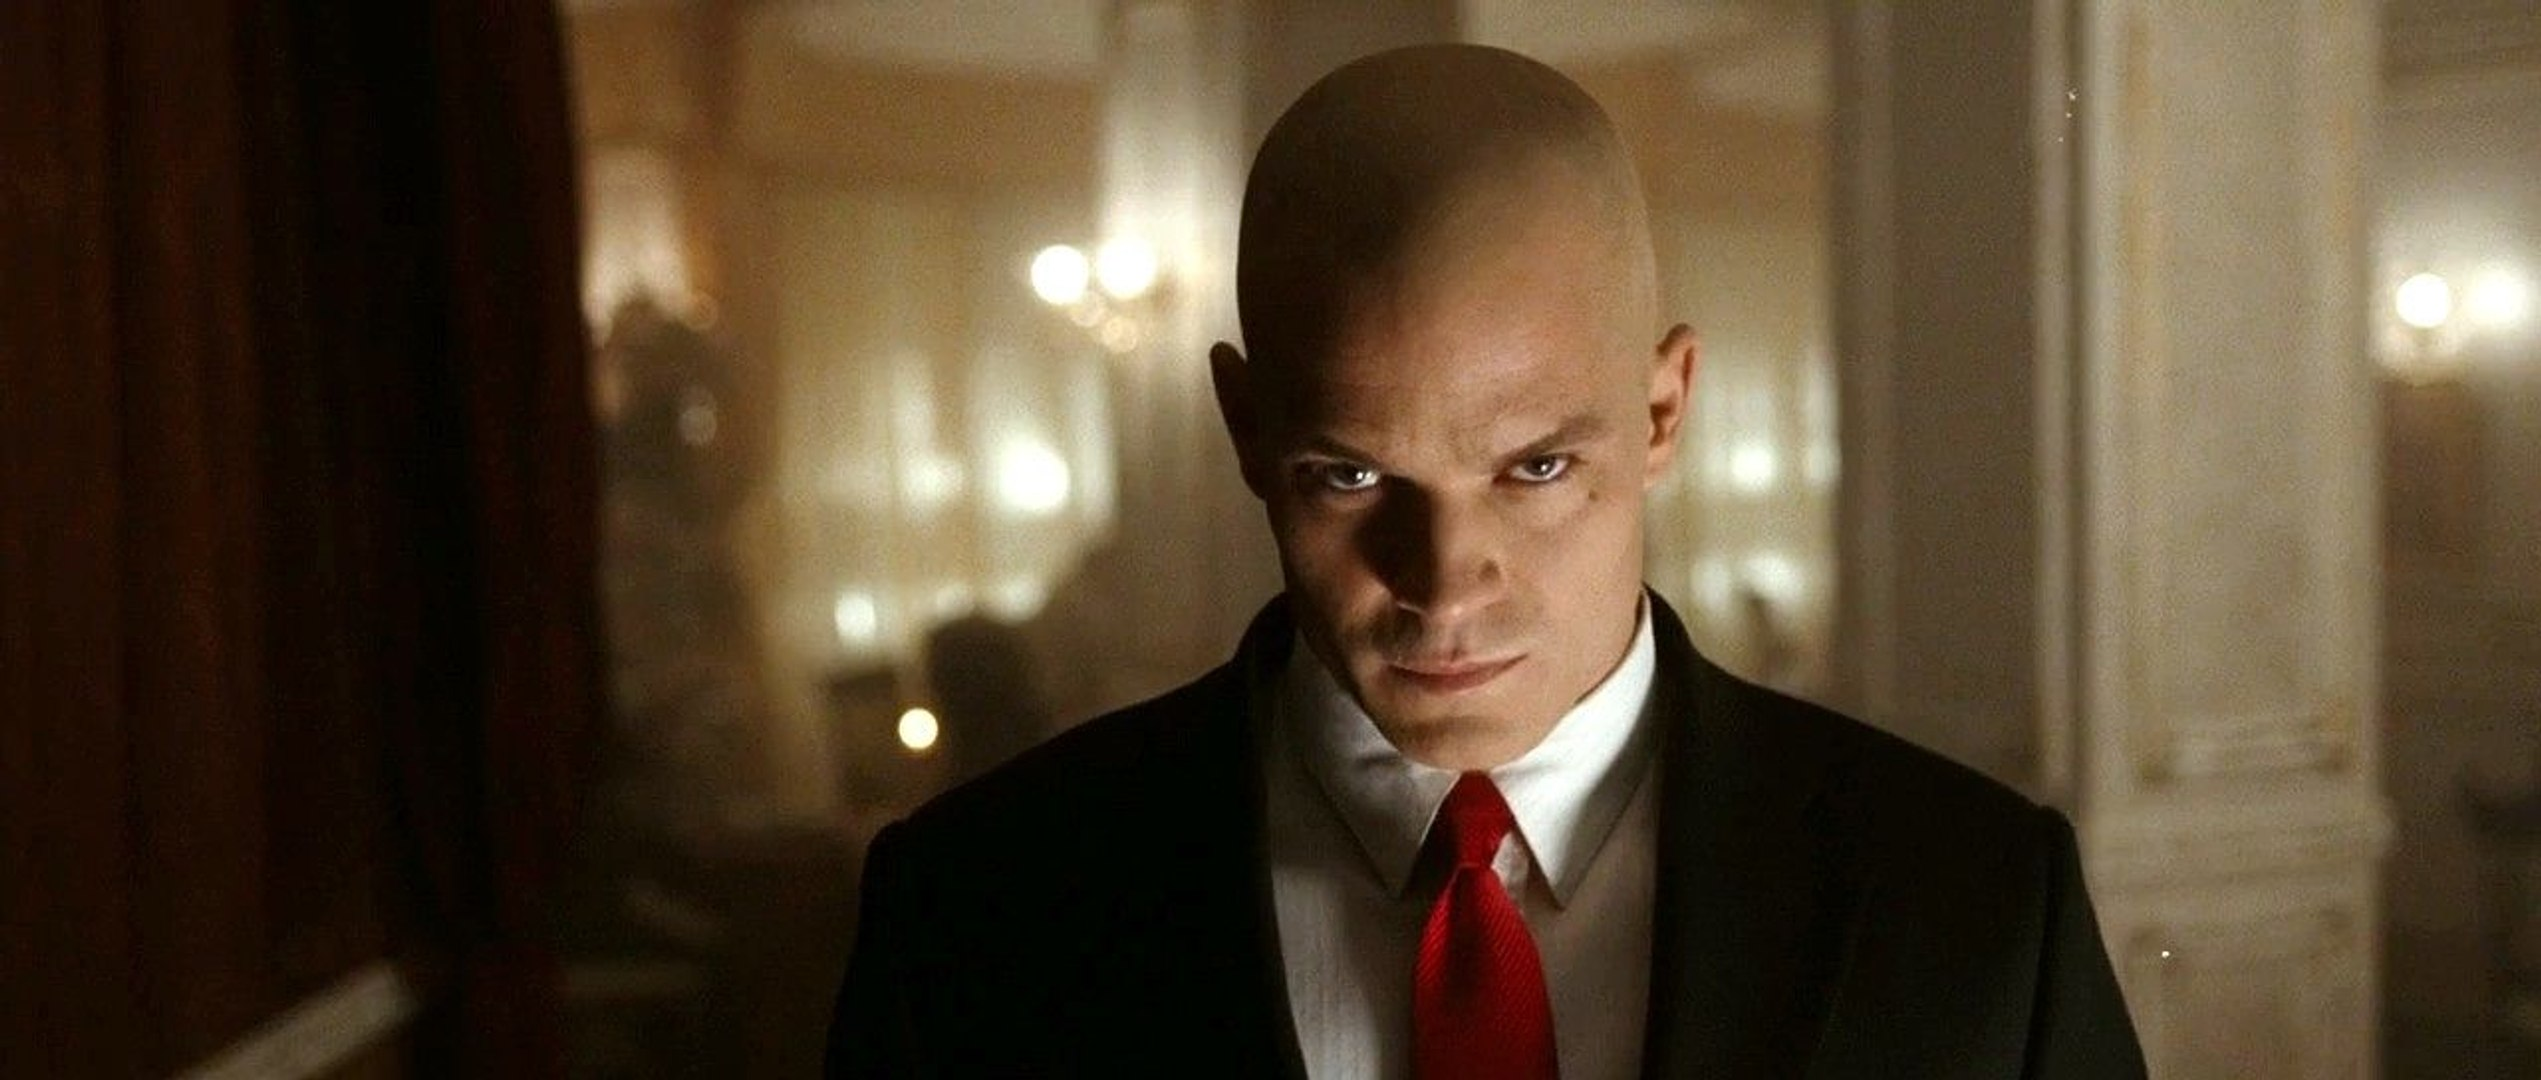 Hitman Agent 47 Full Movie In Hd 720p Video Dailymotion